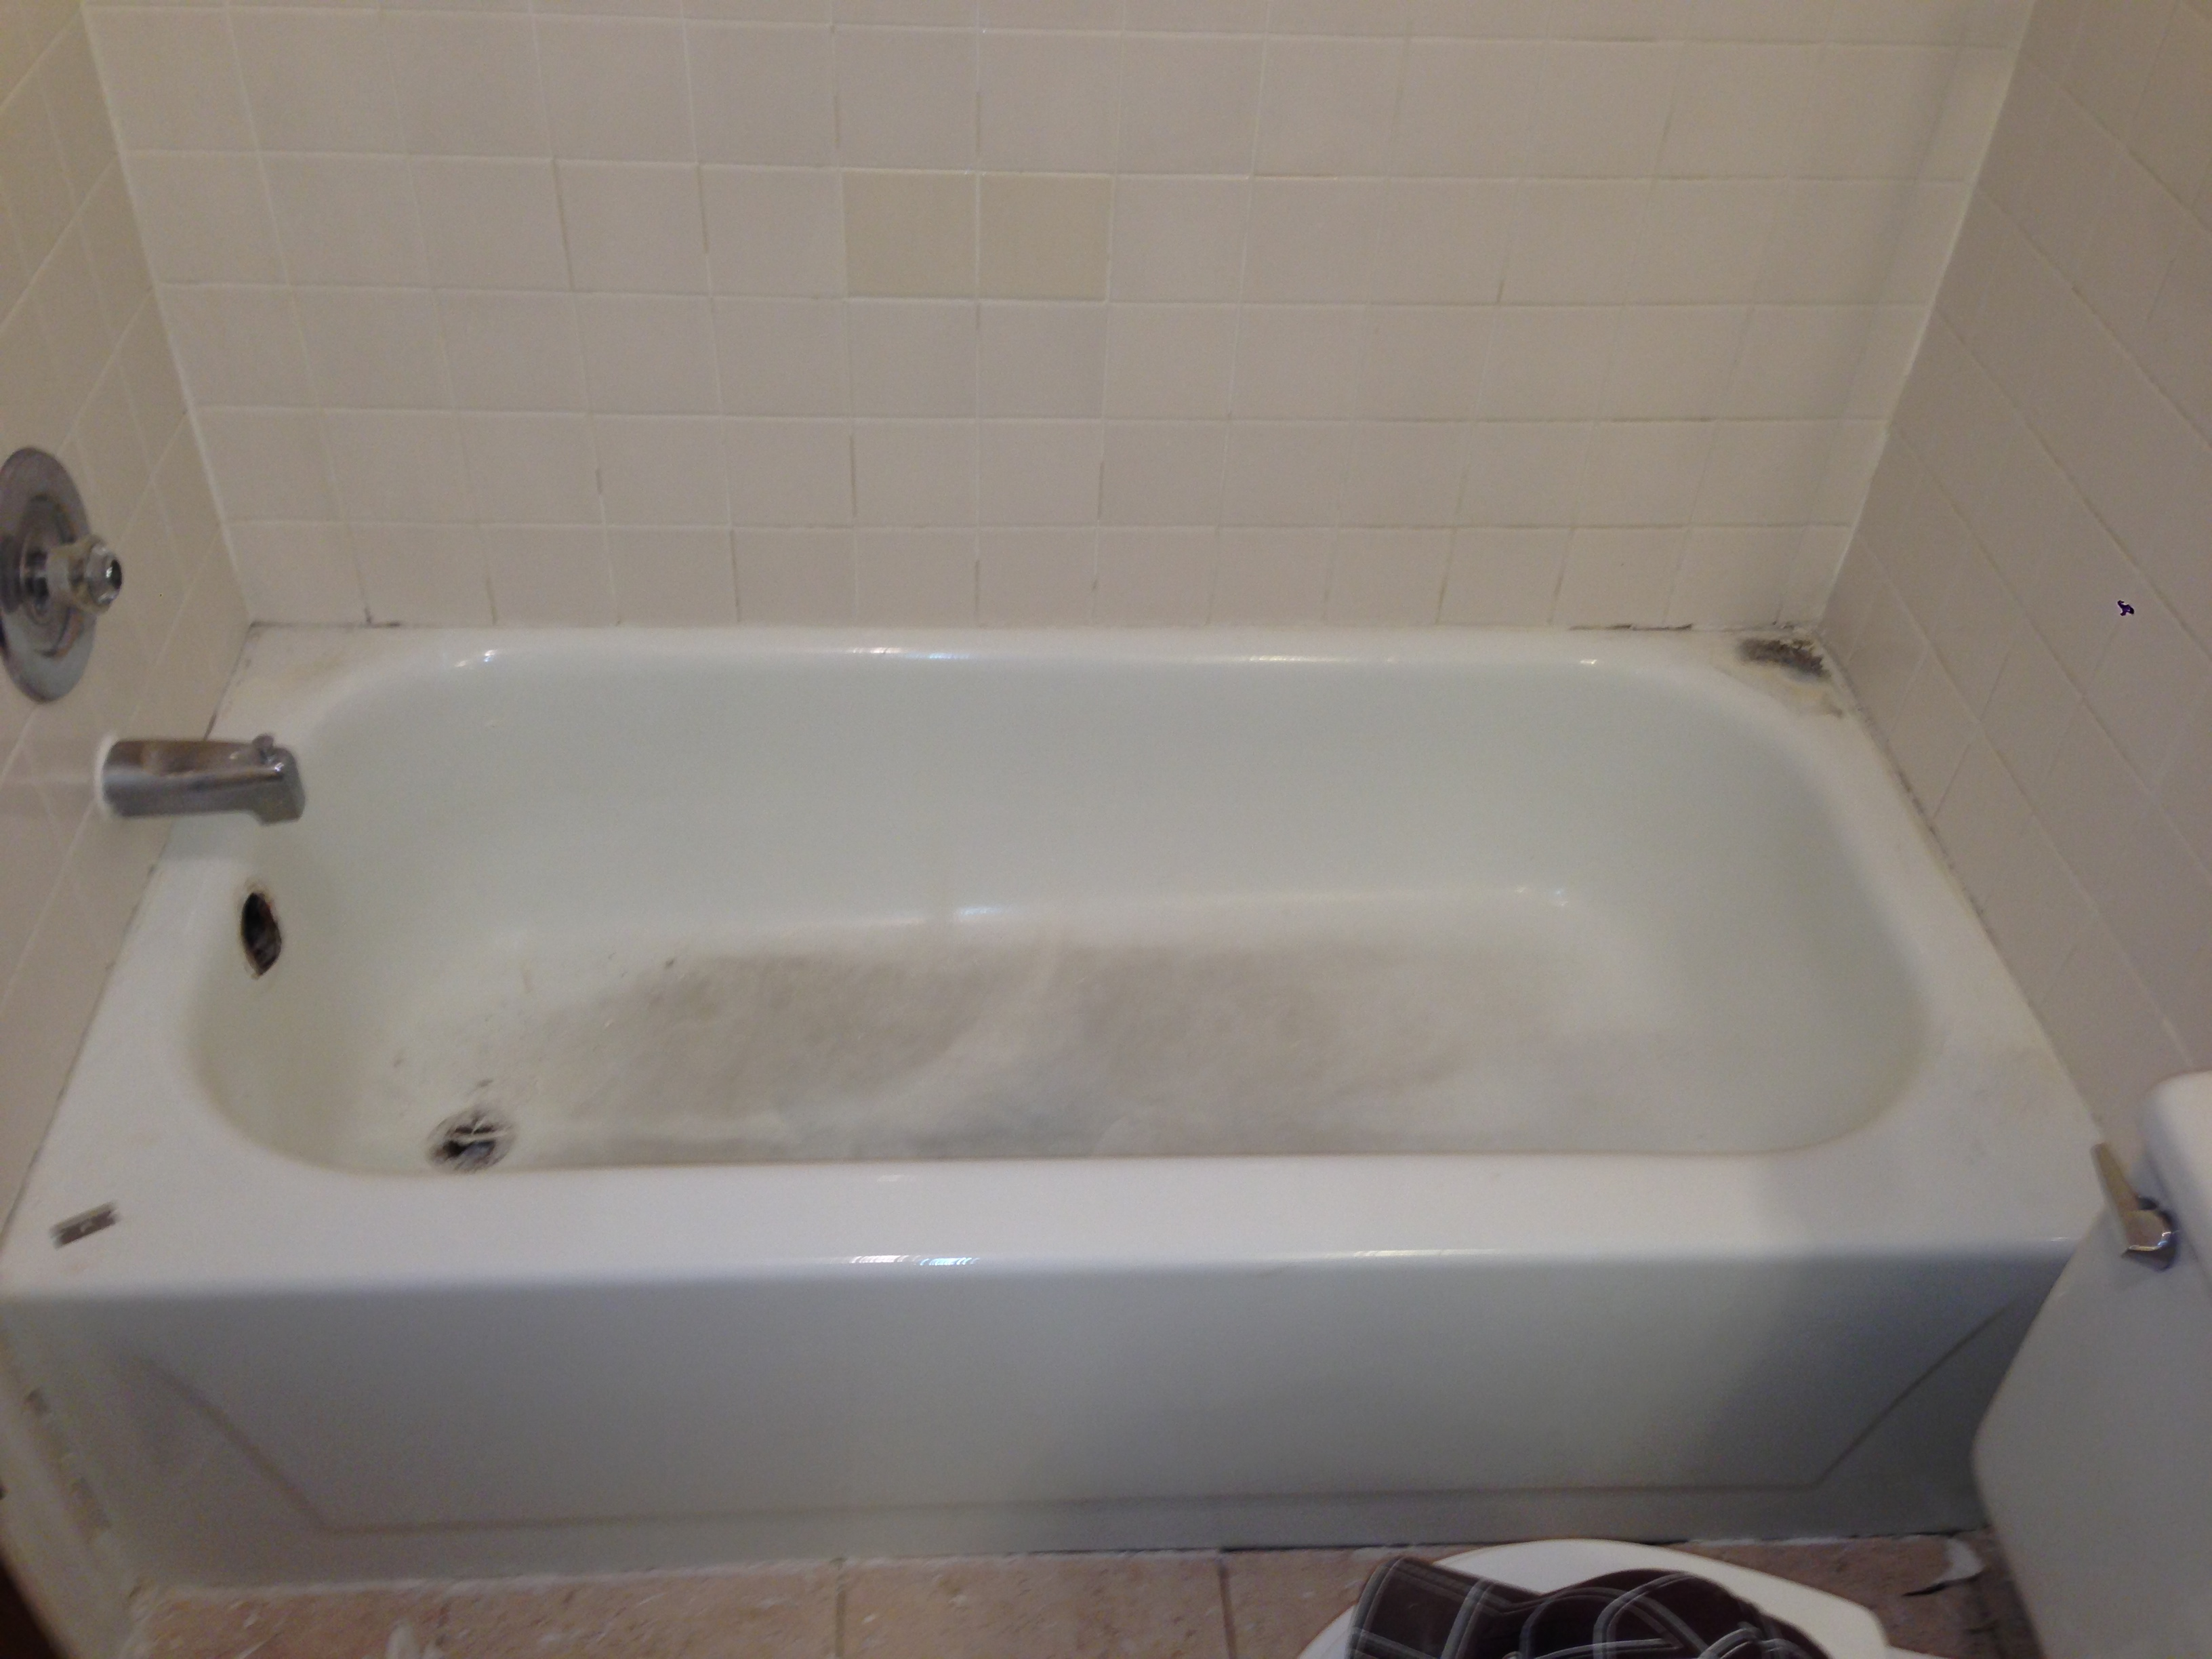 Tub Reglazing in Denver - Colorado Tub Repair